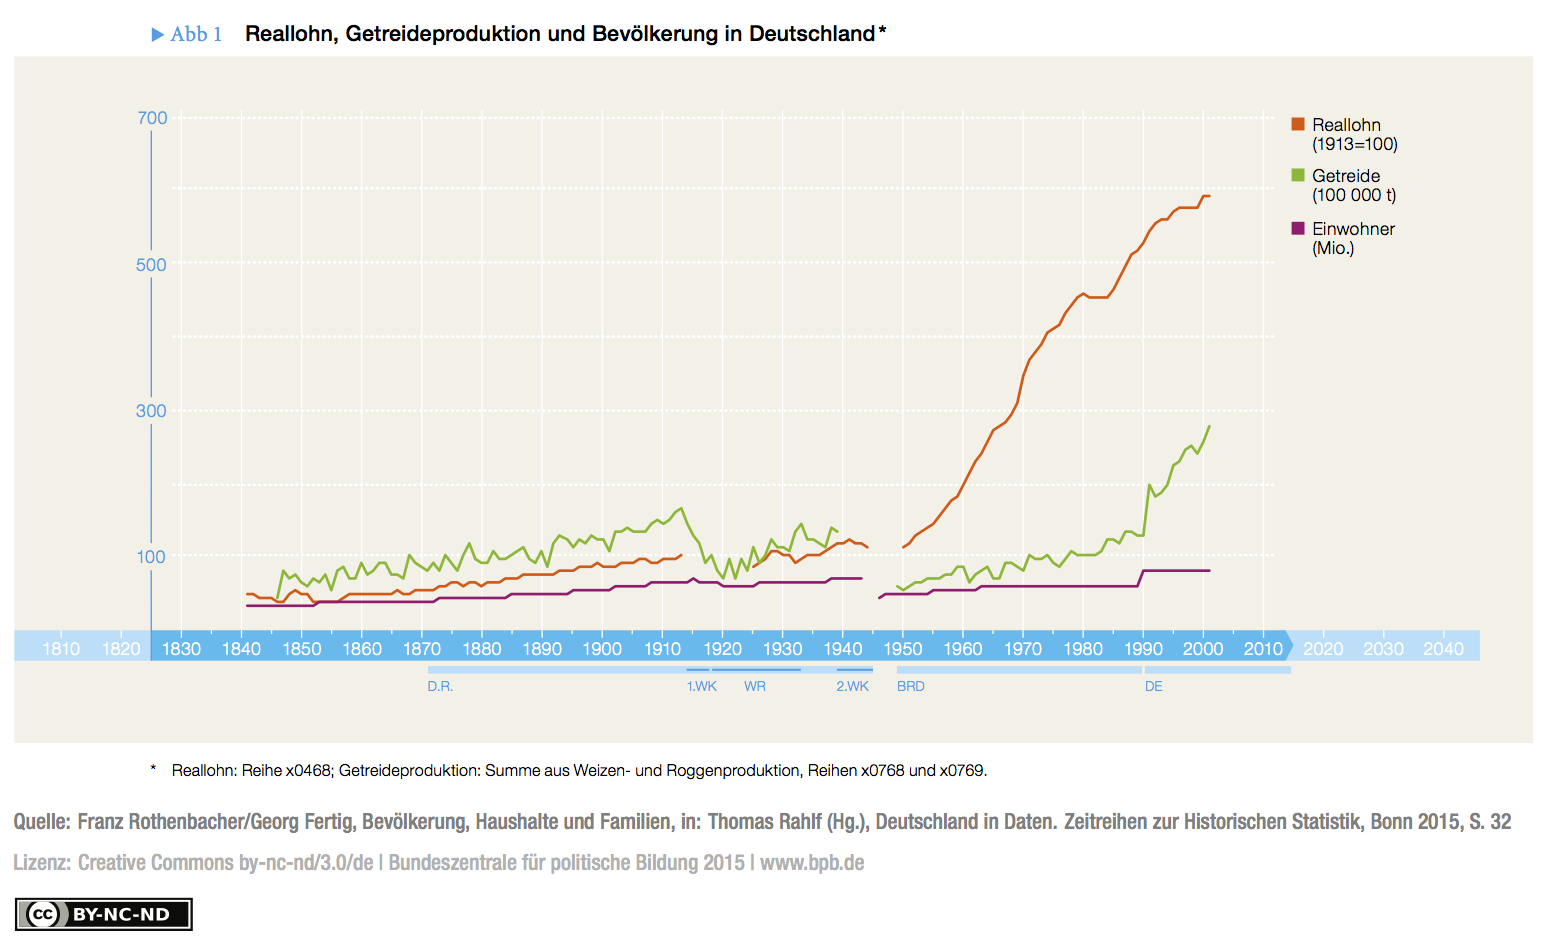 Fig. 1: Real wages, cereal production and population in Germany